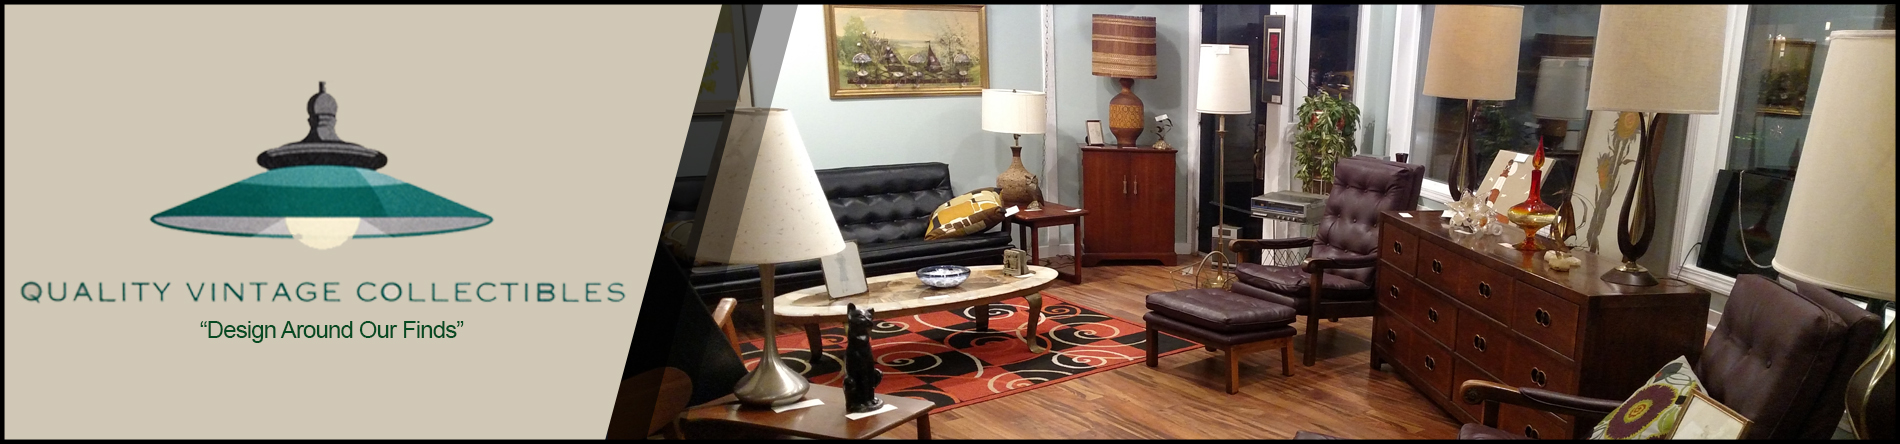 Quality vintage collectibles is a mid century modern furniture store in grand rapids mi